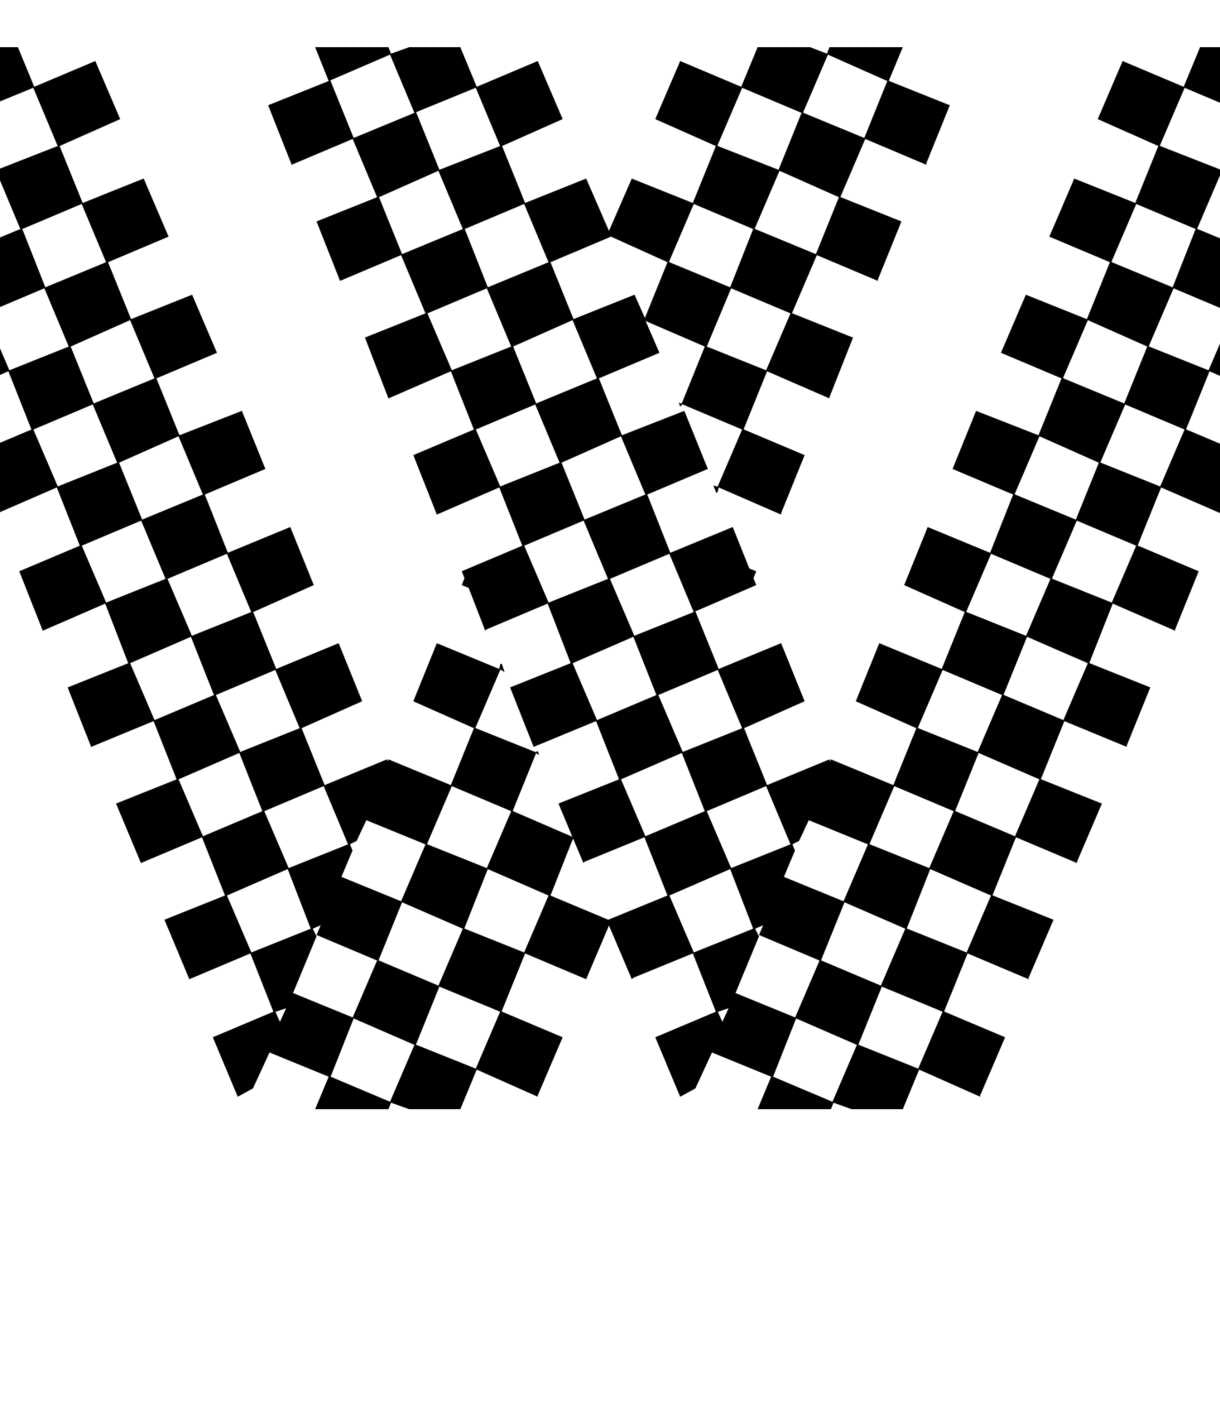 pattern-project-letters-22-1220x1407px